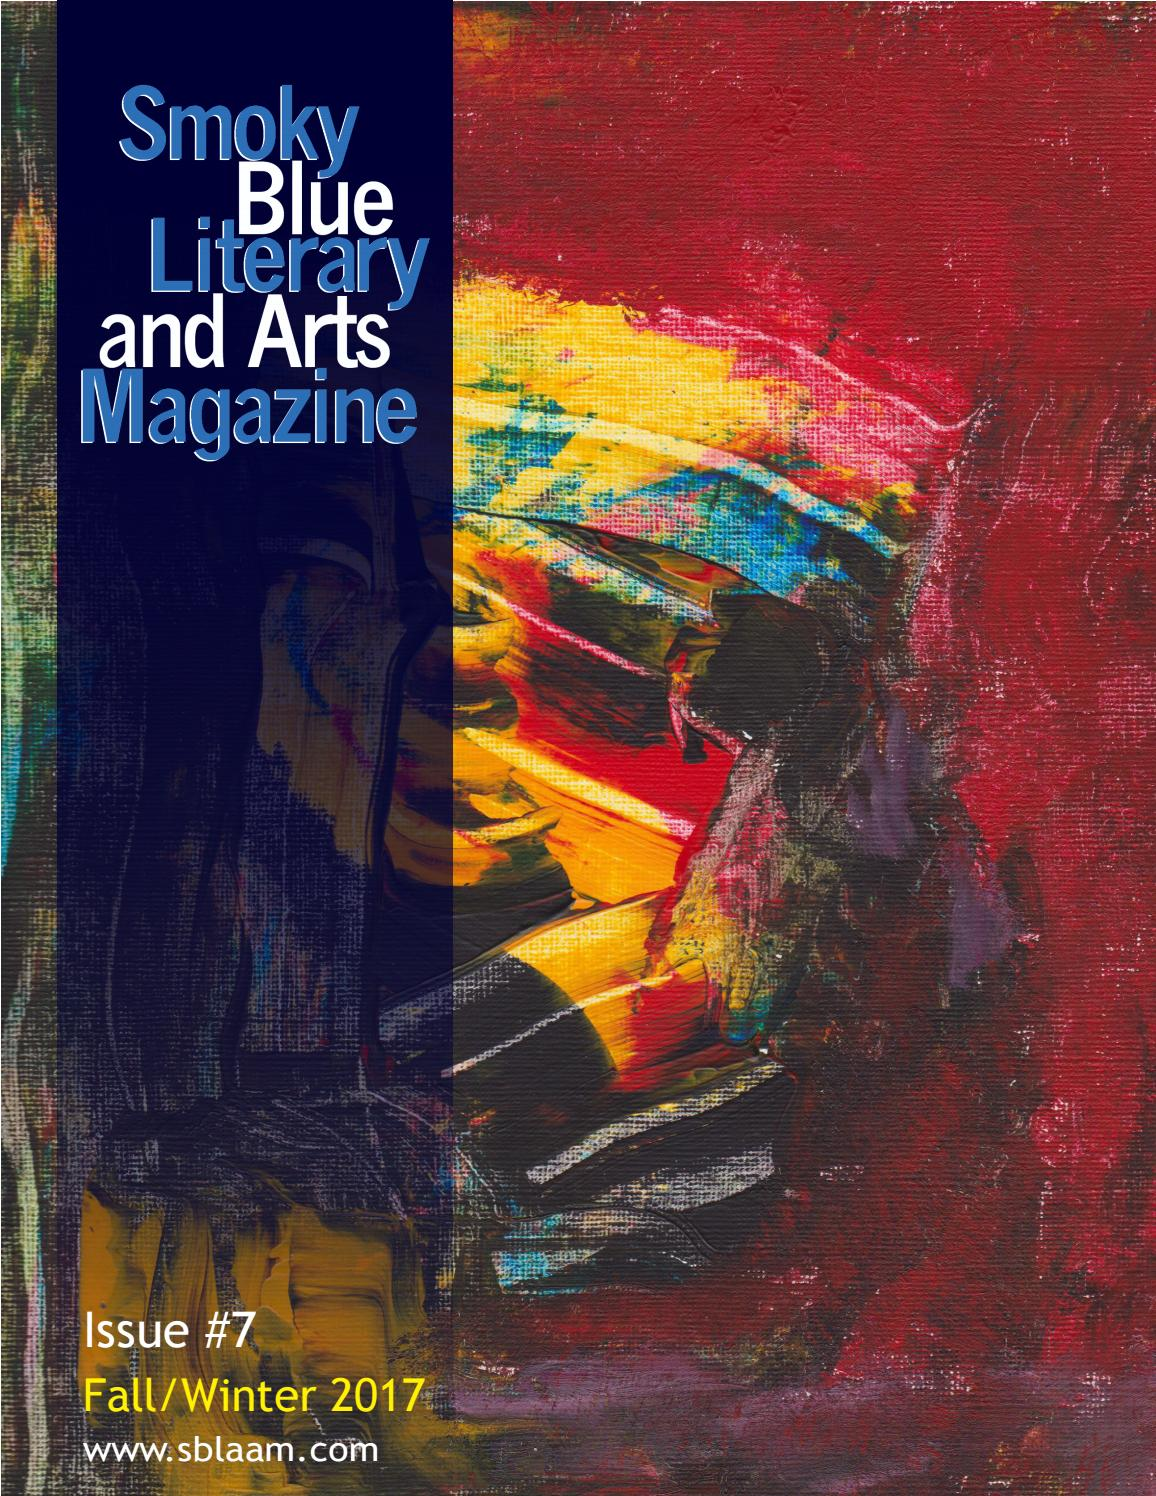 2dd54976 Smoky Blue Literary and Arts Magazine #7 by Smoky Blue Literary and Arts  Magazine - issuu